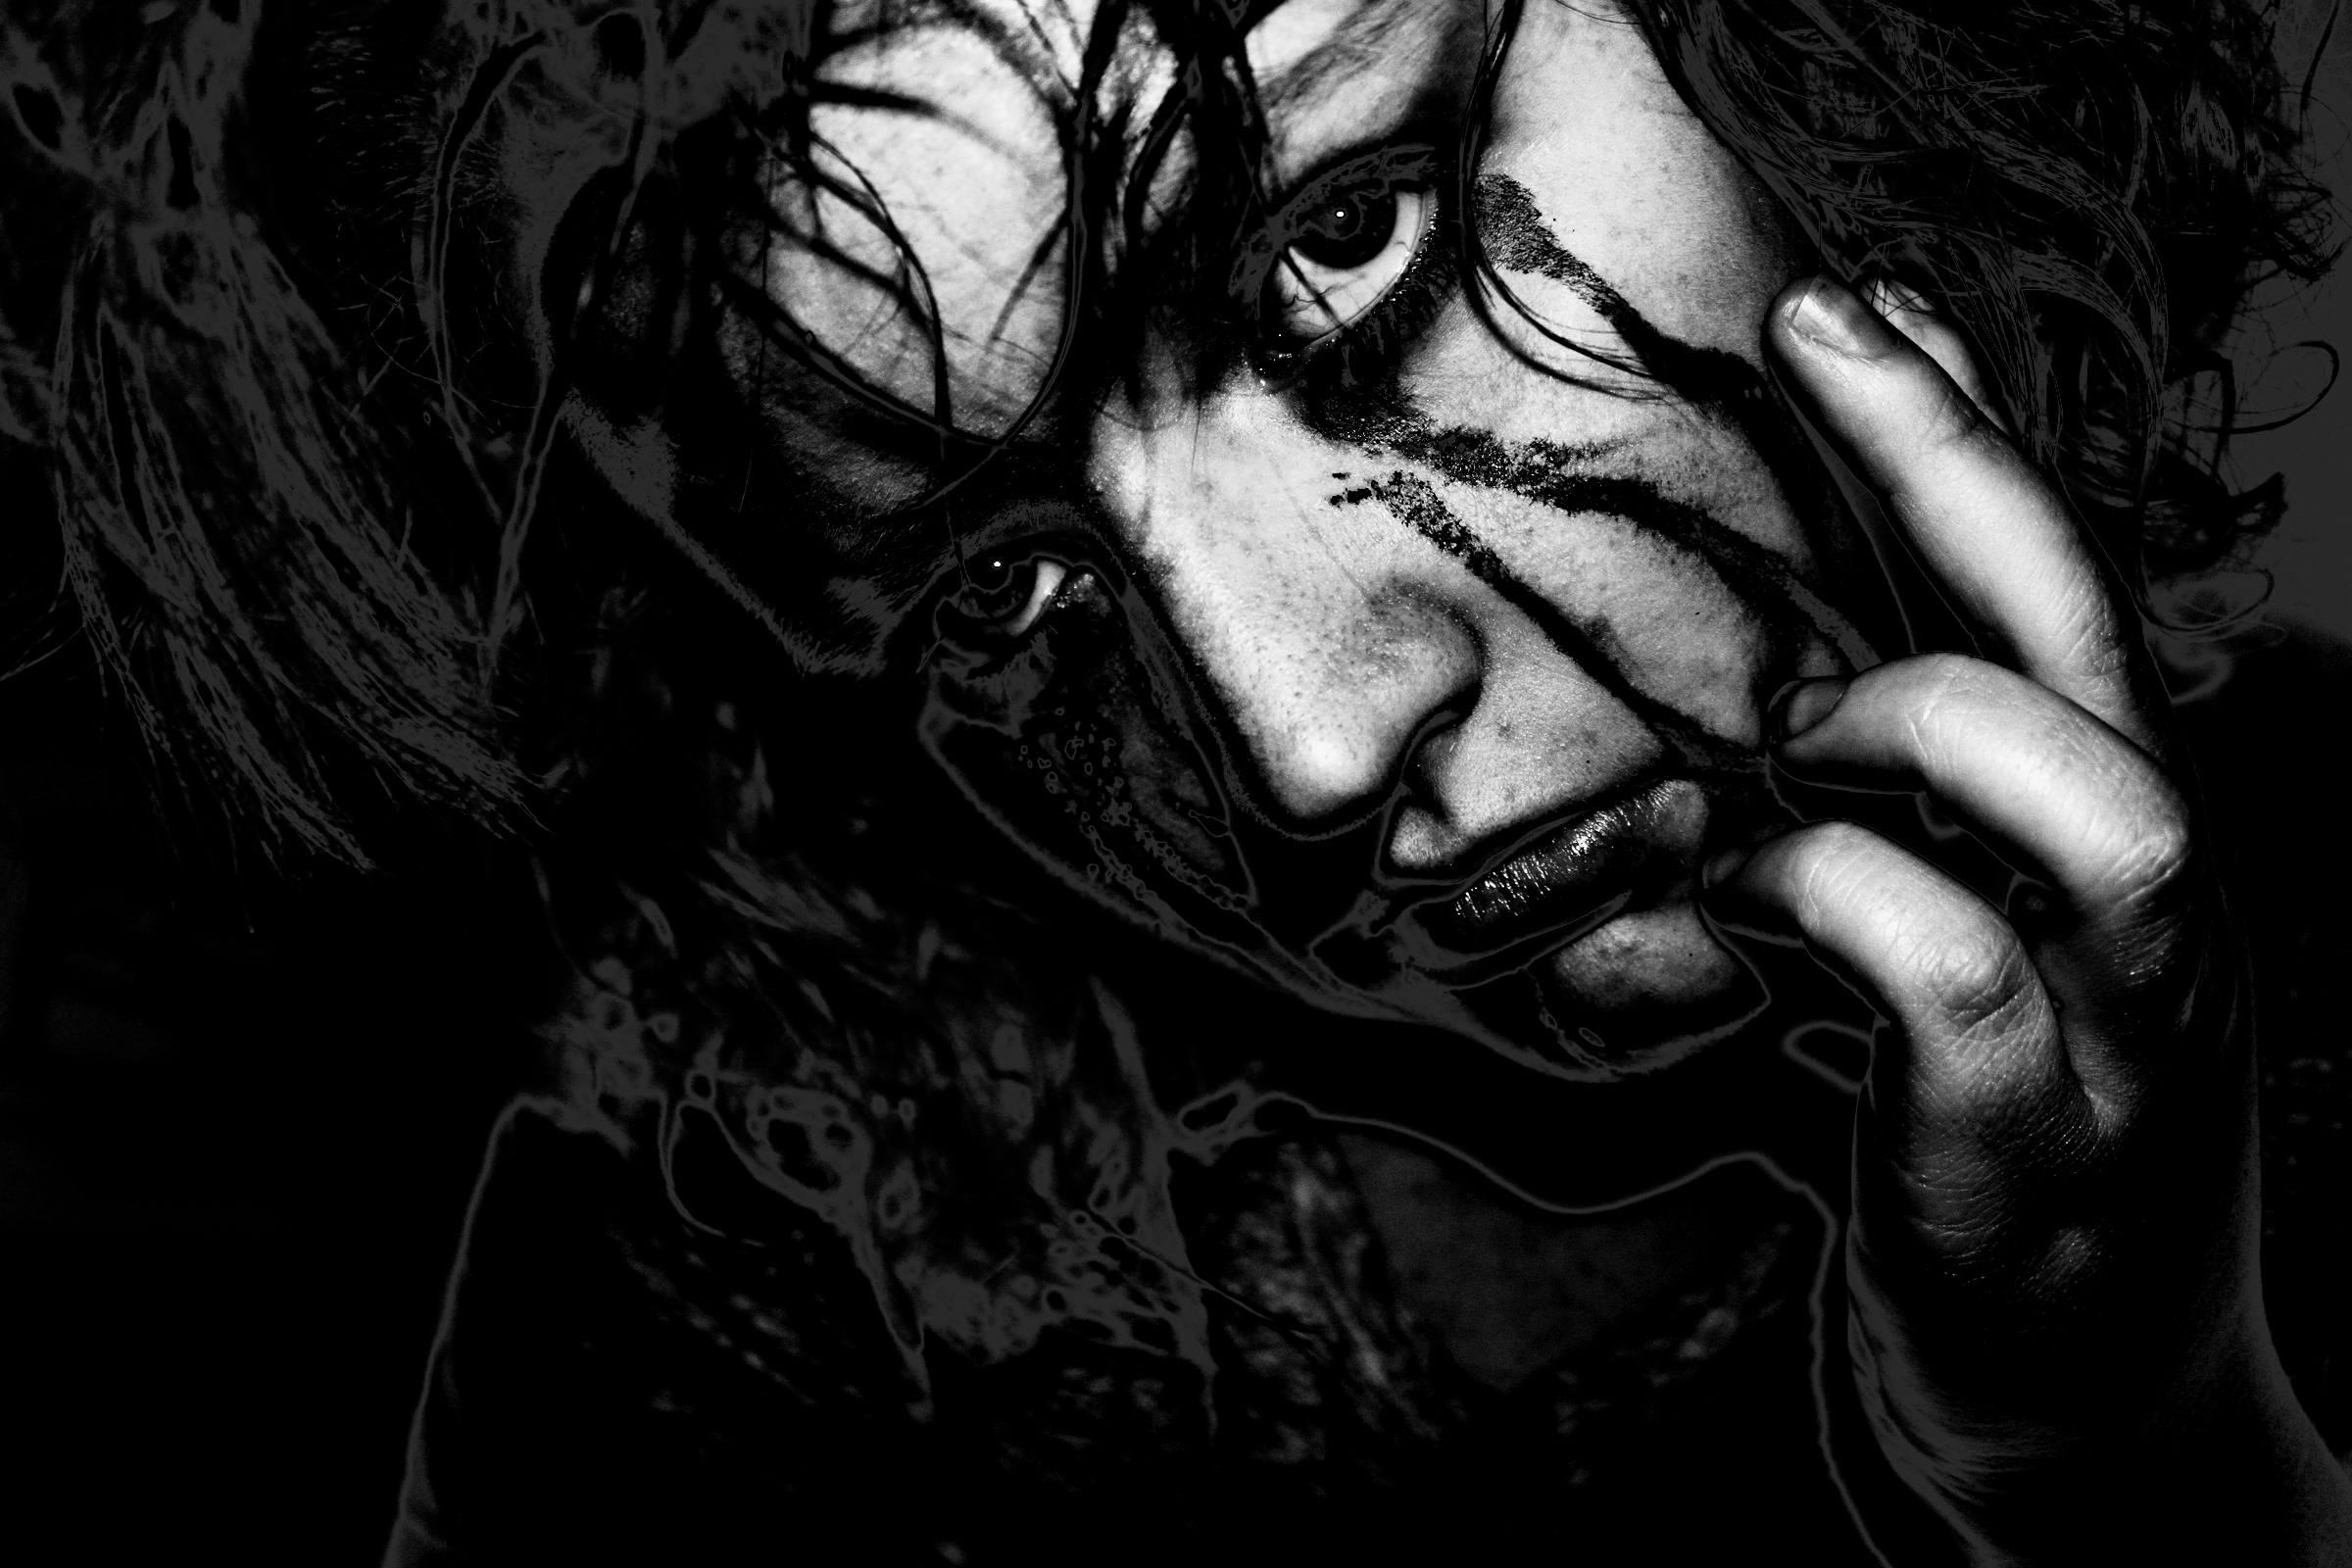 The crow hd wallpaper background image 2400x1600 id - The crow wallpaper ...